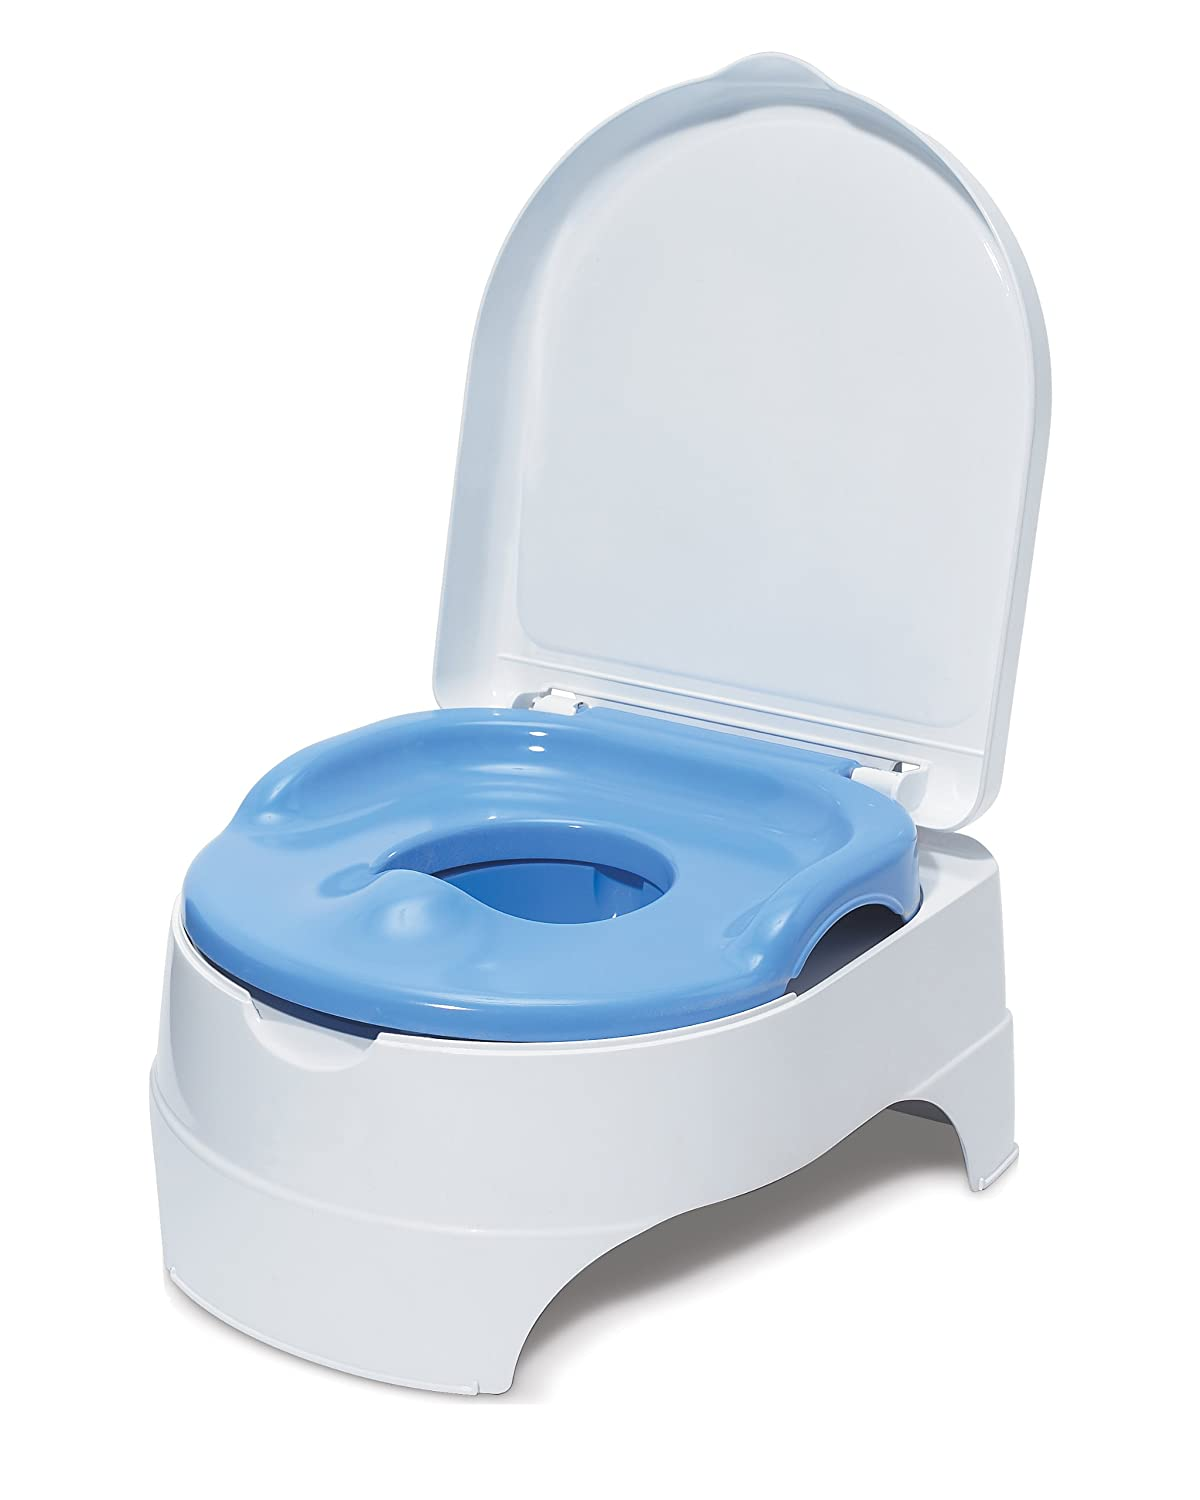 All-in-One Potty Seat and Step Stool - Blue Summer Infant Inc. 11010